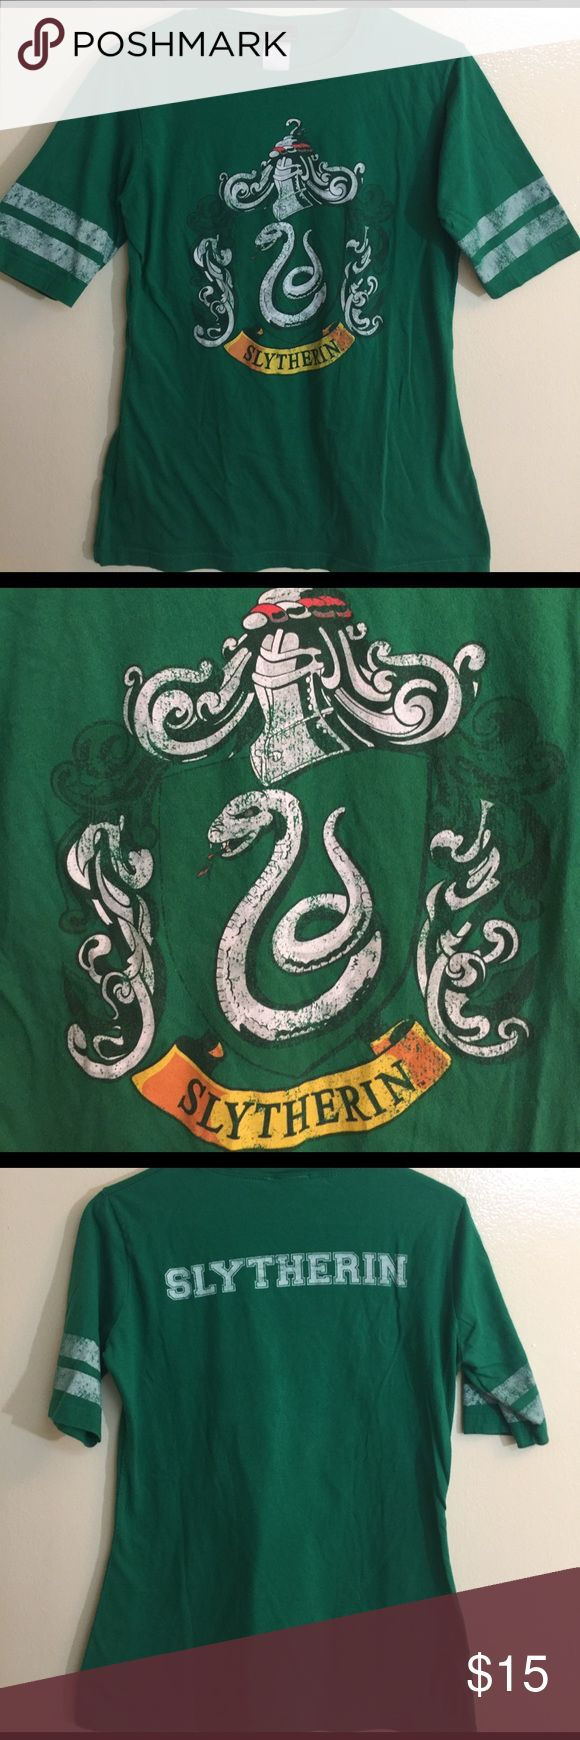 Harry Potter Slytherin Green Women's Tee This is the real deal the Harry Potter Tee you  have been waiting for! It is kelly green and has SLYTHERIN on the back! It is in perfect condition and ready to go! Harry Potter Tops Tees - Short Sleeve